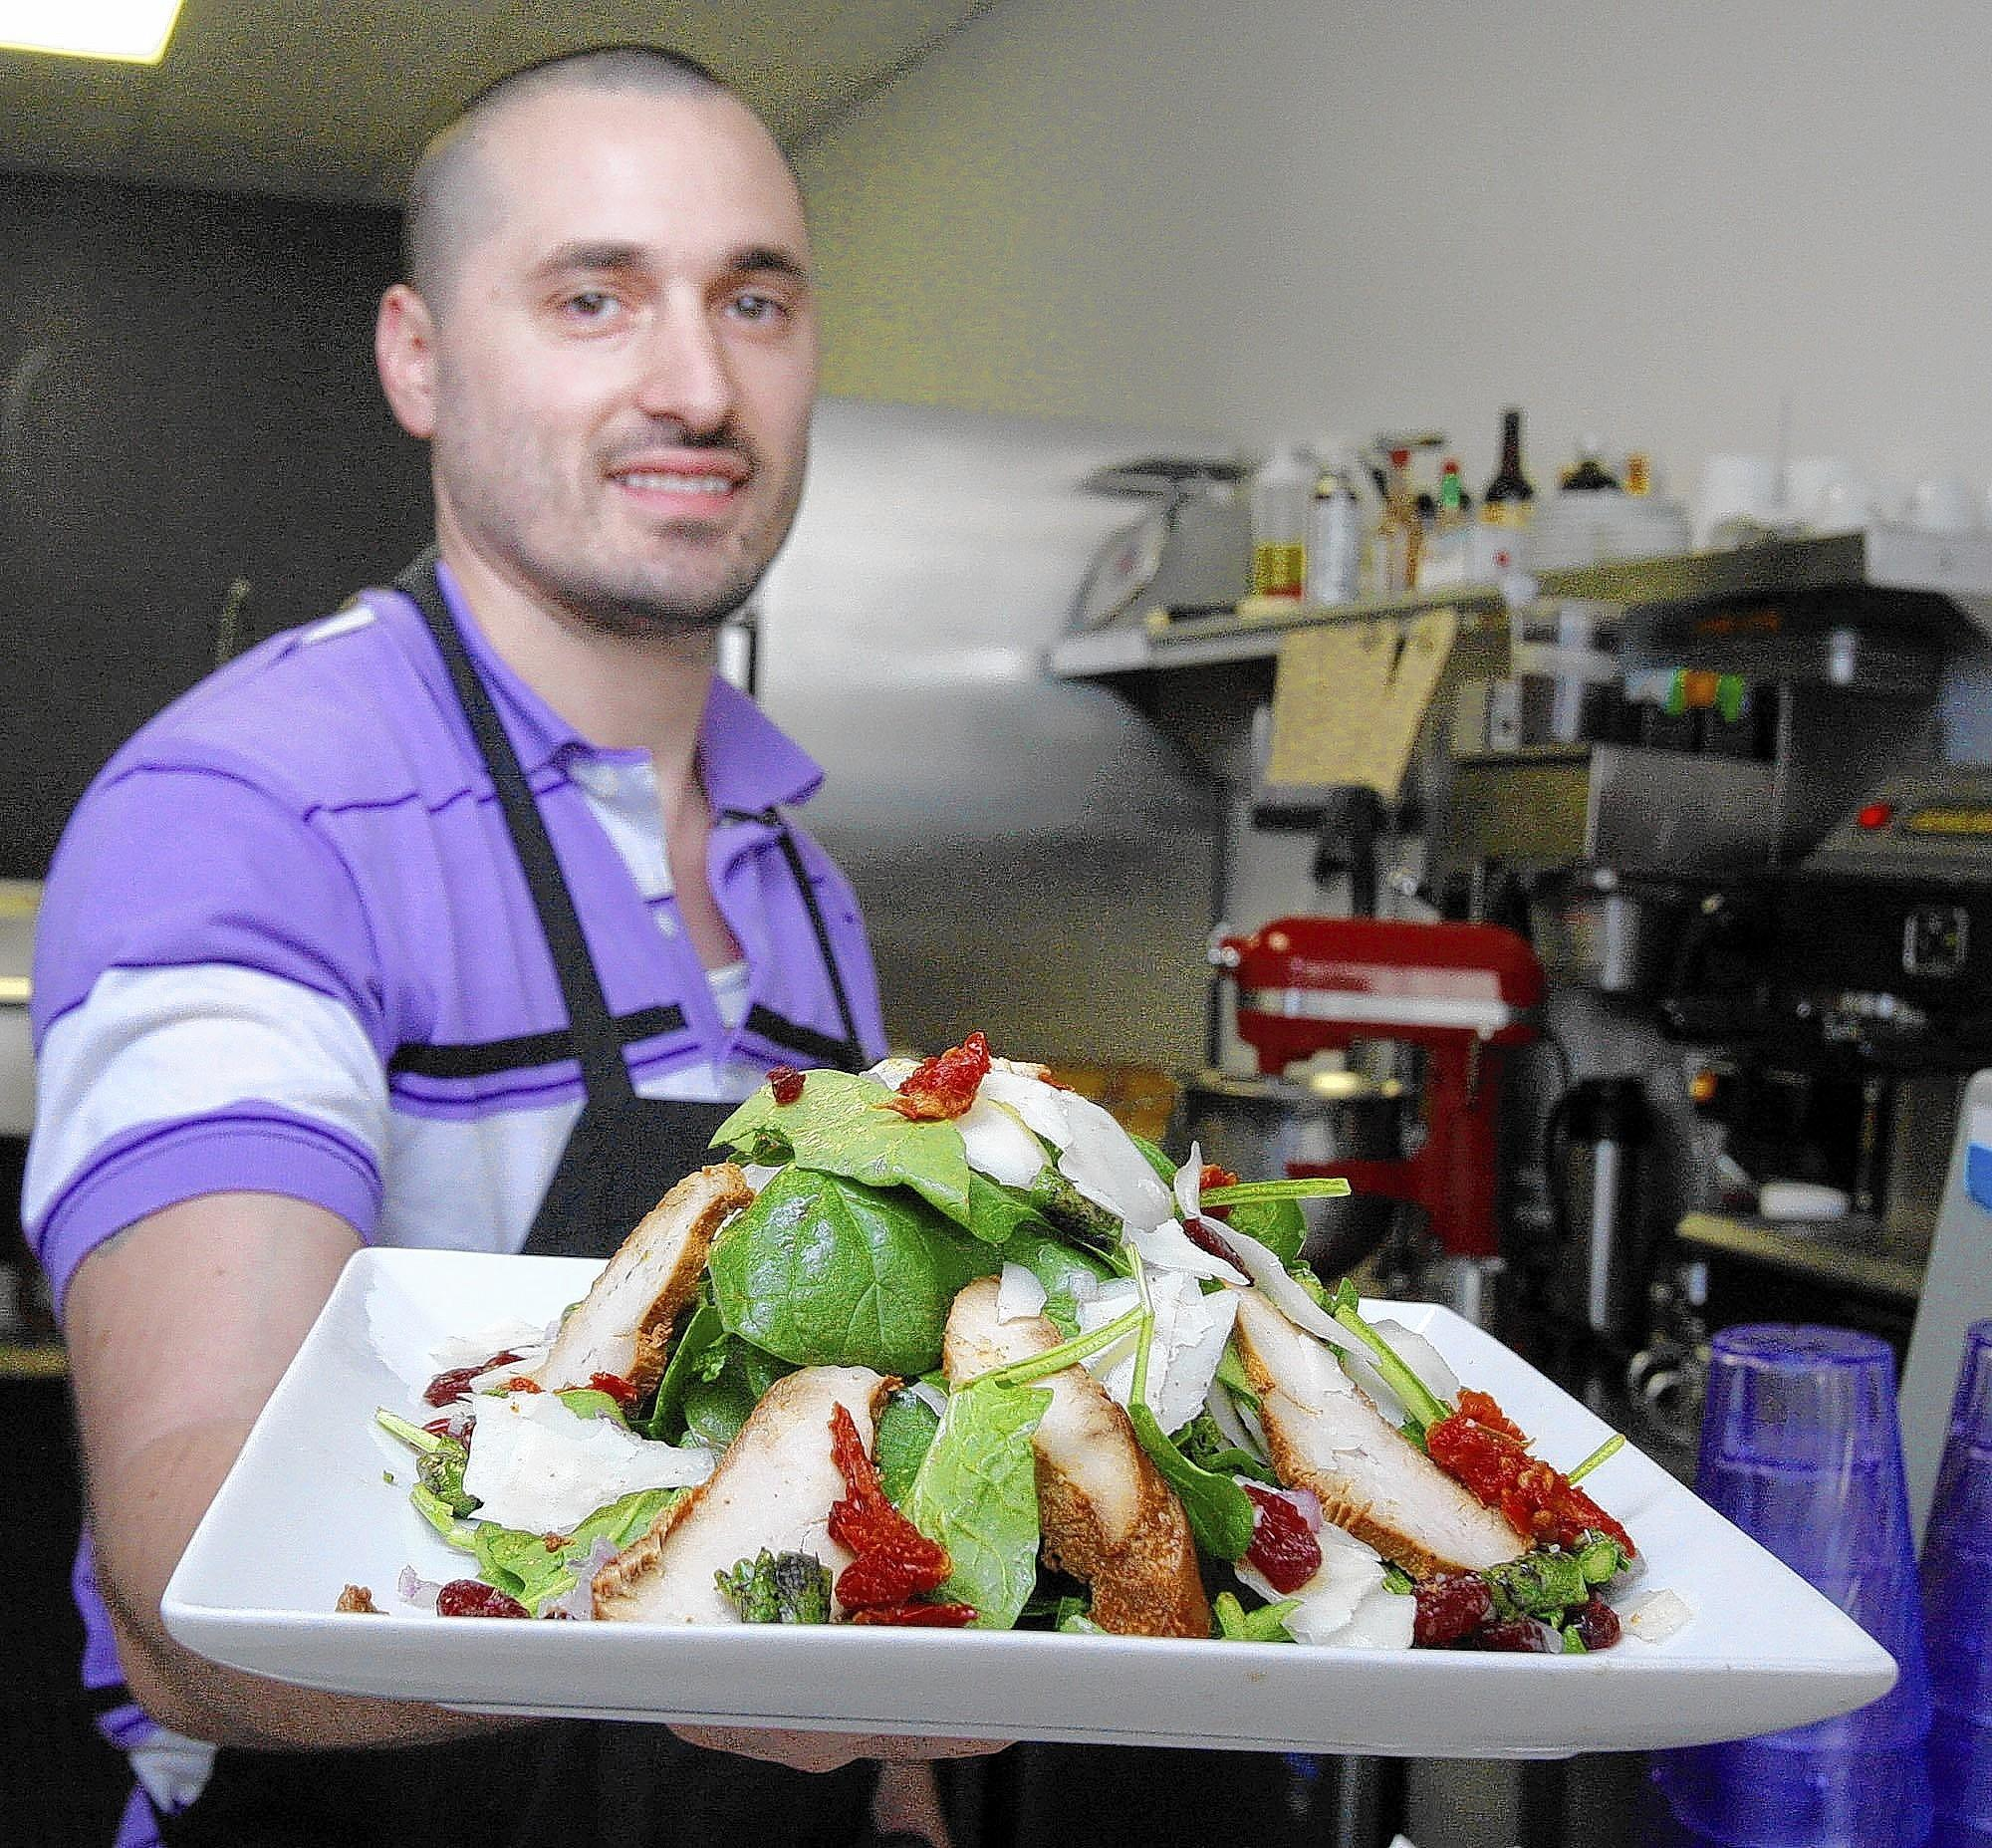 Chef Aurelien (Tony) Mosconi holds a La Chicken Manchego Salad with spinach, grilled chicken, imported Manchego cheese, red onions, cranberries, sundried tomatoes, asparagus, homemade raspberry vinaigrette at Monsieur Crêpe in Sierra Madre on Friday, March 7, 2014.